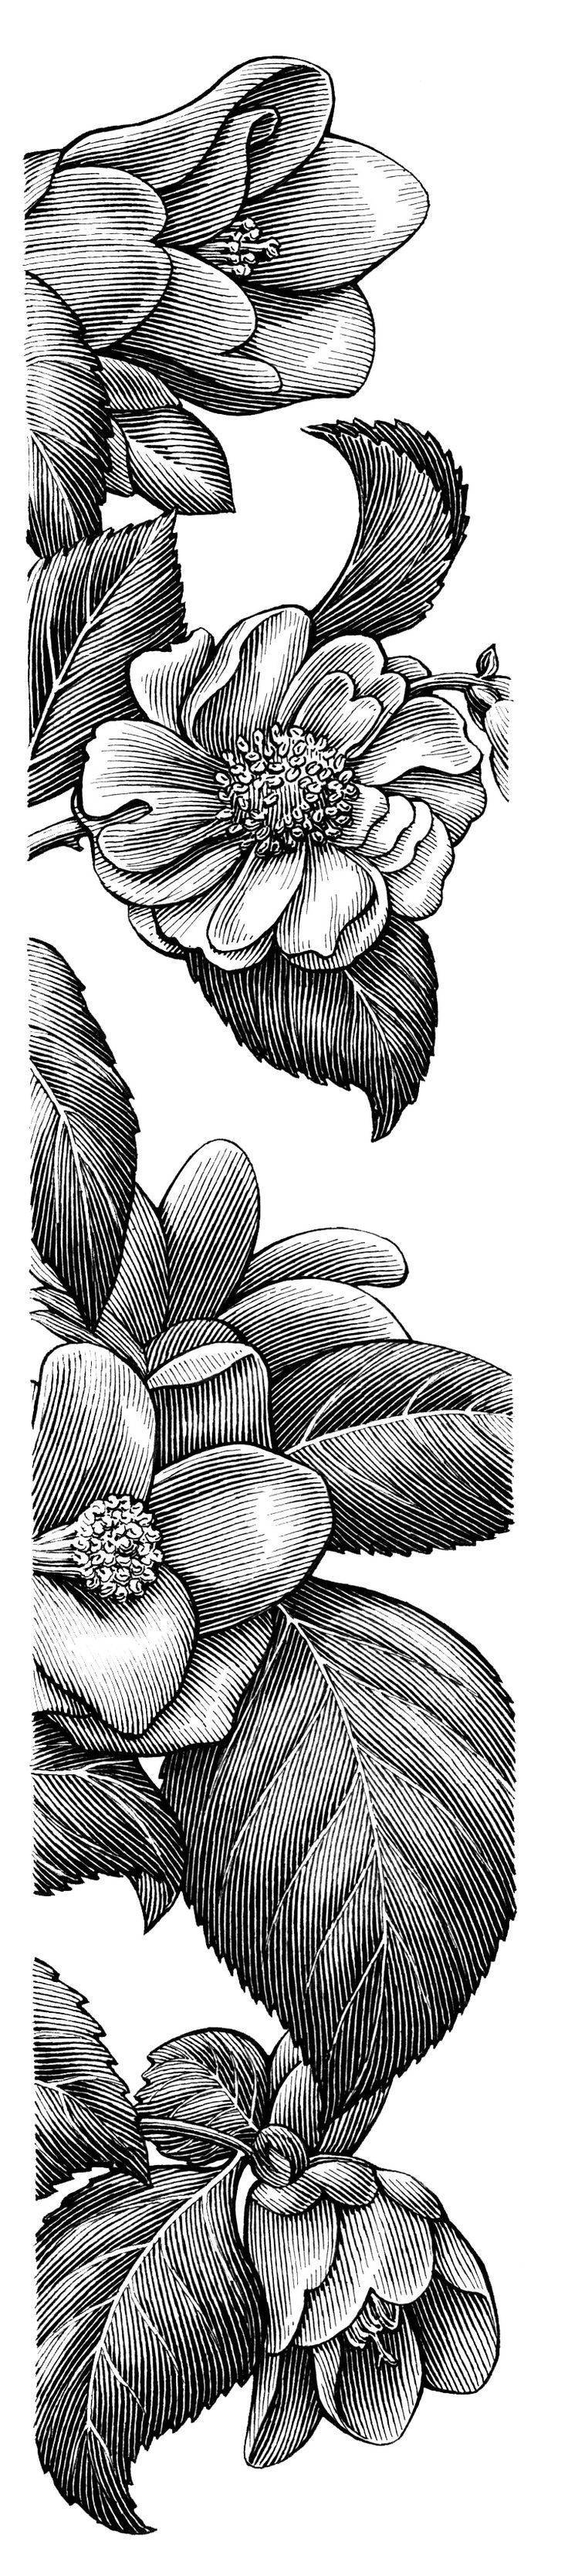 Detailed Black White Floral Drawing Art Pinterest Floral